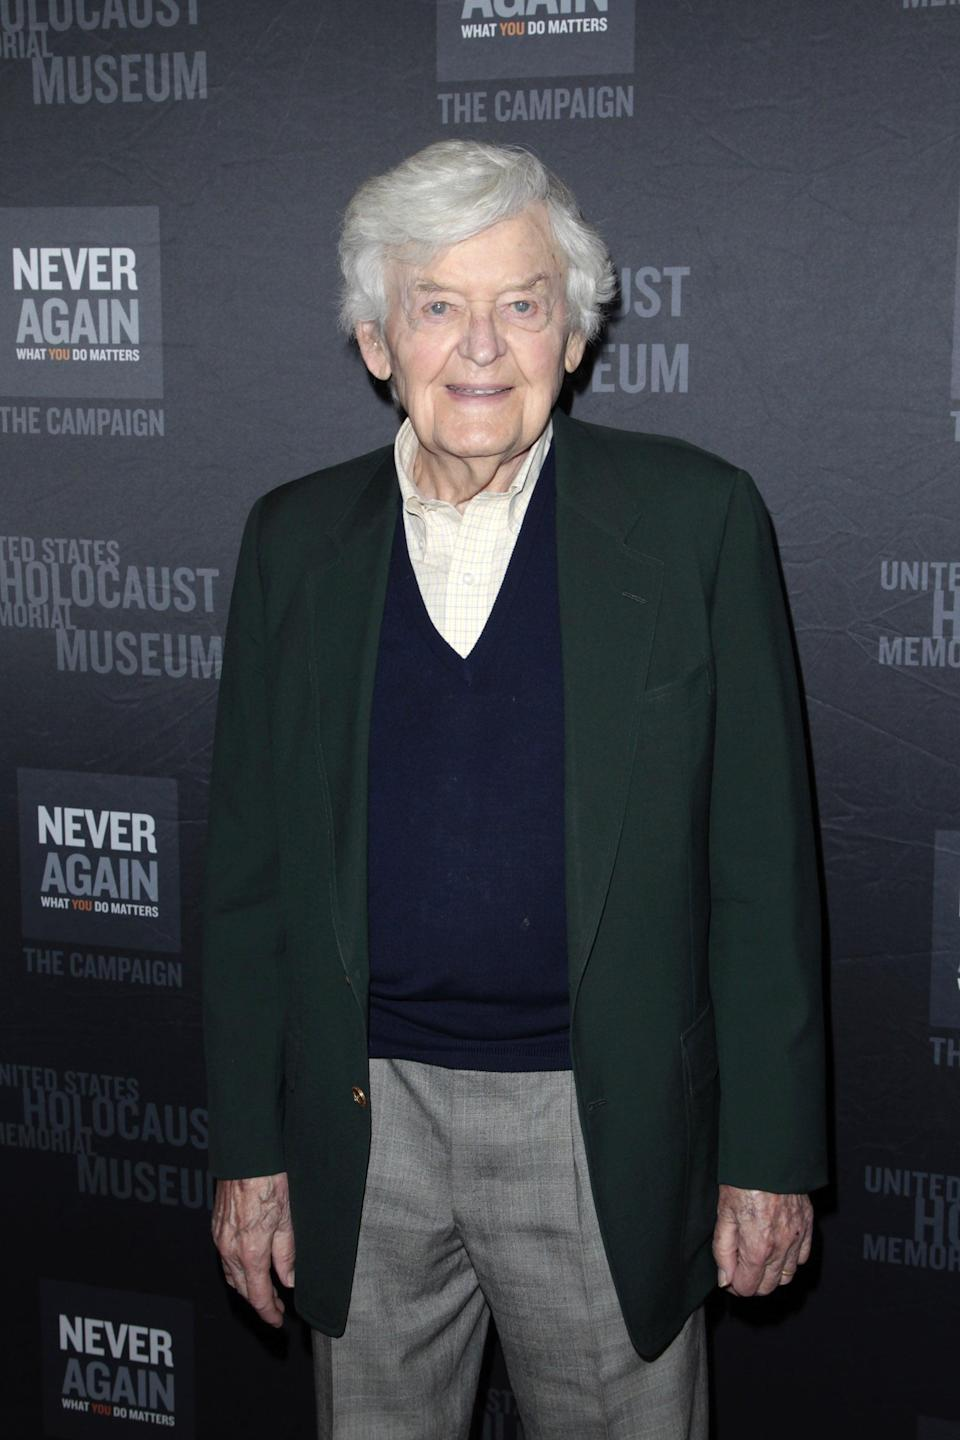 """<p>The Tony-winning actor, who was well known for his portrayal of Mark Twain in the Broadway play <strong>Mark Twain Tonight!</strong>, <a href=""""http://variety.com/2021/film/news/hal-holbrook-dead-dies-emmy-tony-winning-actor-mark-twain-1234898102/"""" class=""""link rapid-noclick-resp"""" rel=""""nofollow noopener"""" target=""""_blank"""" data-ylk=""""slk:died on Jan. 23 at age 95"""">died on Jan. 23 at age 95</a>. </p>"""